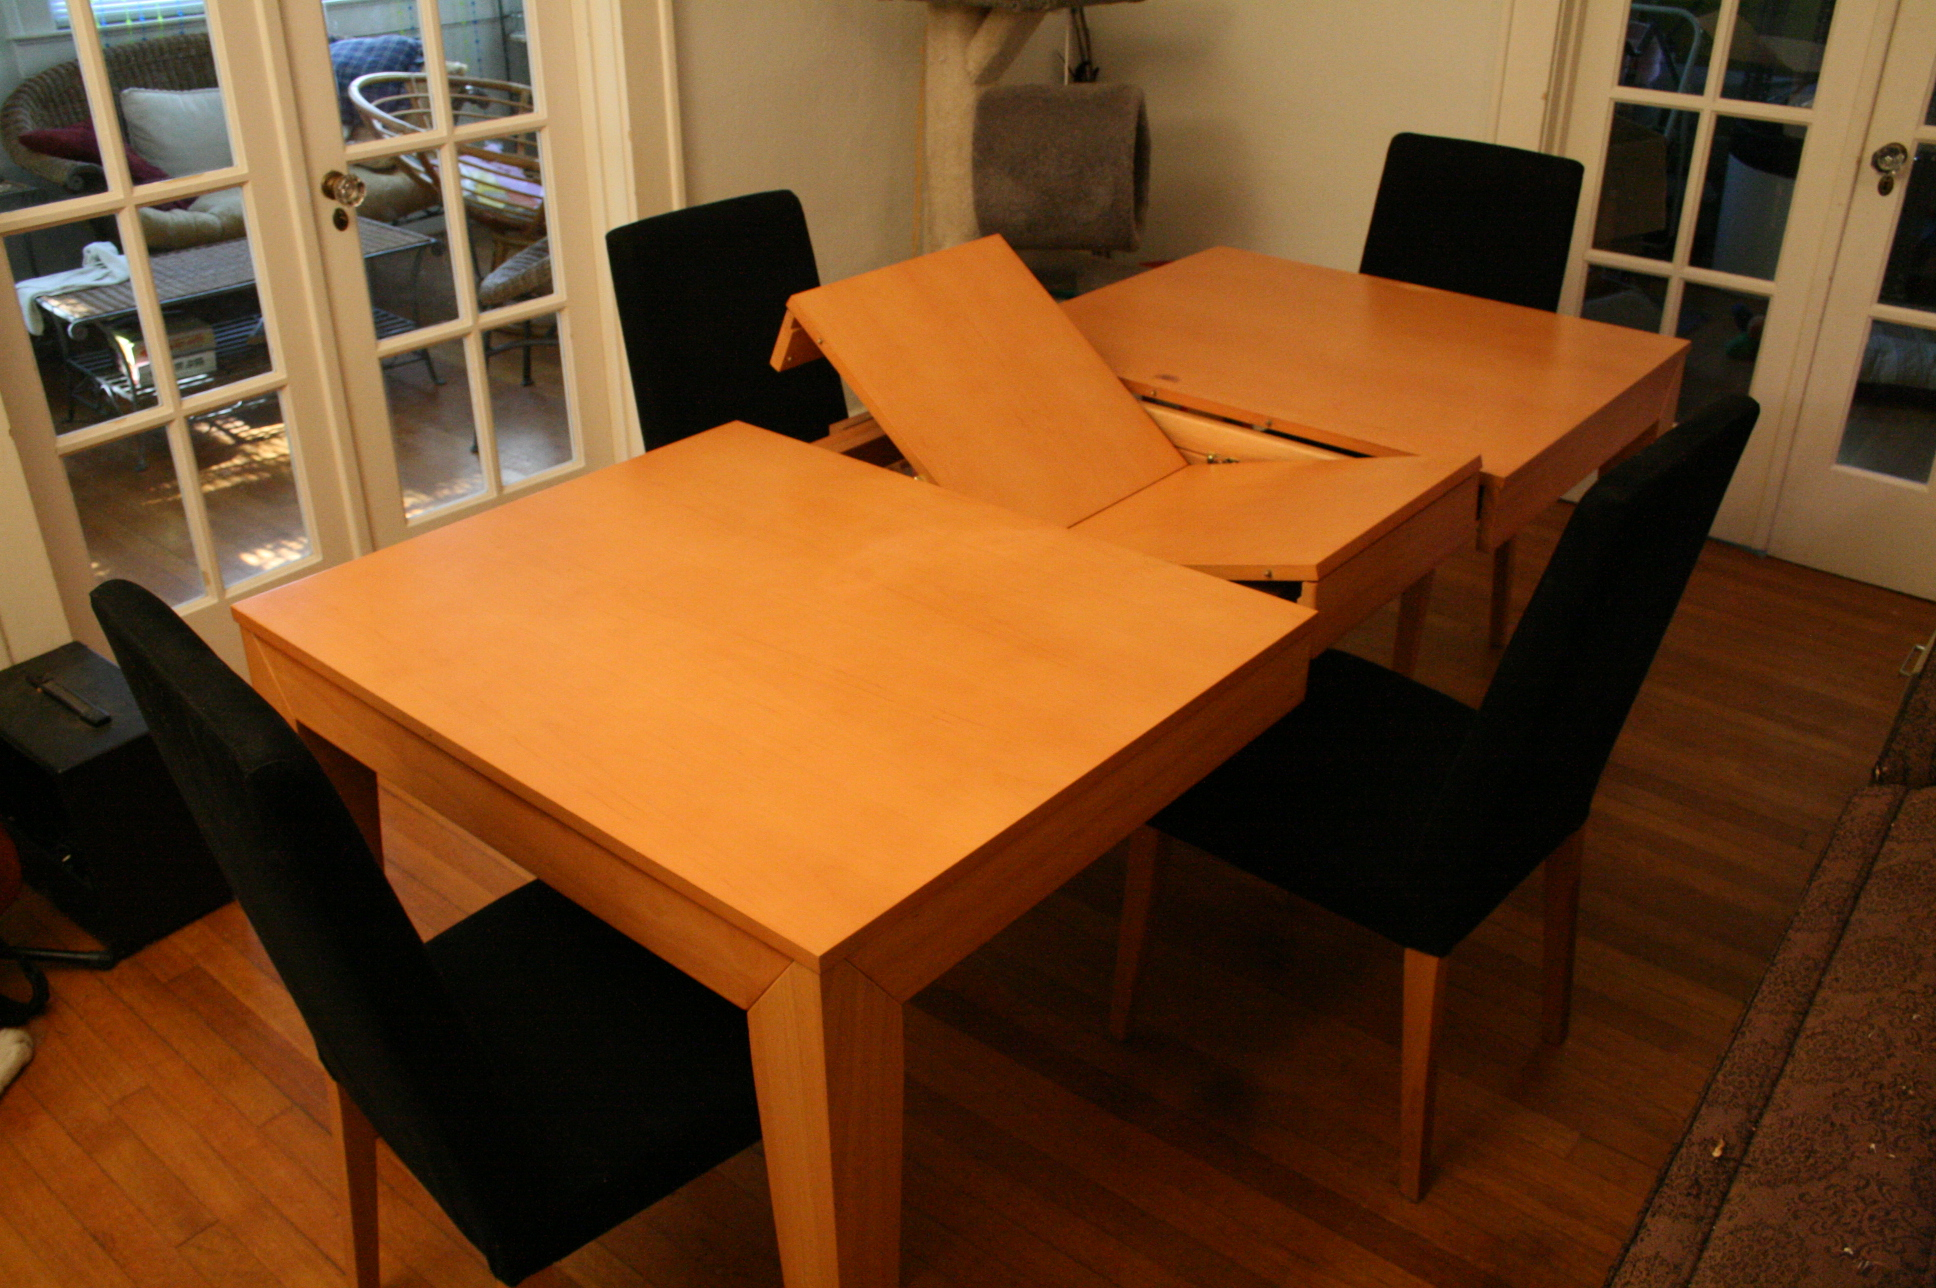 File:2008-04-13 Expandable table expanding jpg - Wikimedia